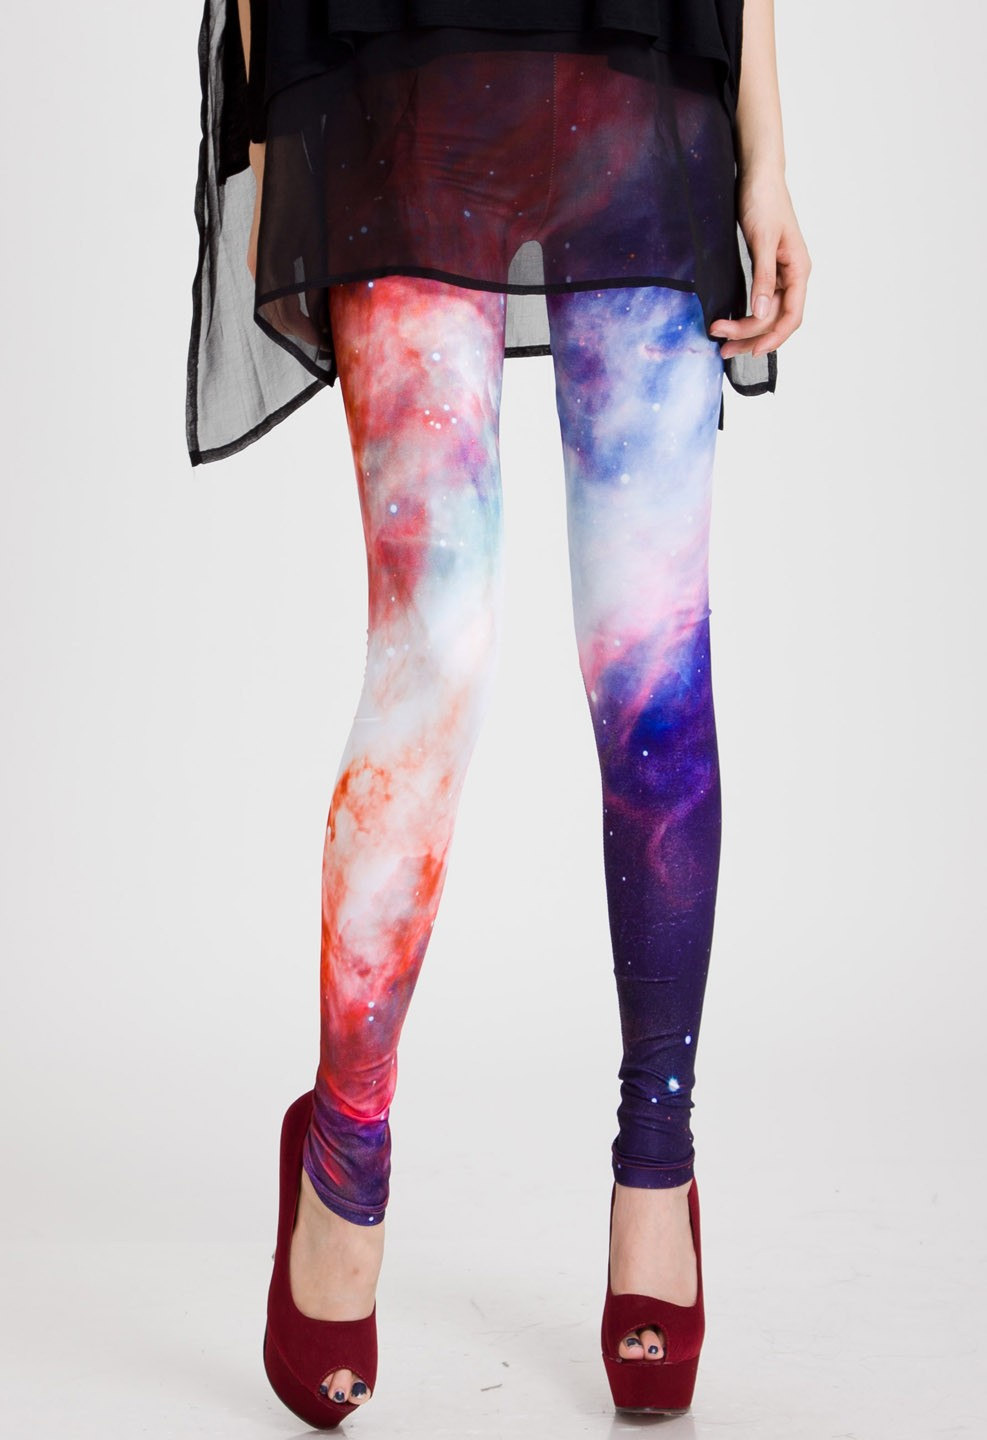 Varietats: Clothes with Galaxy Prints